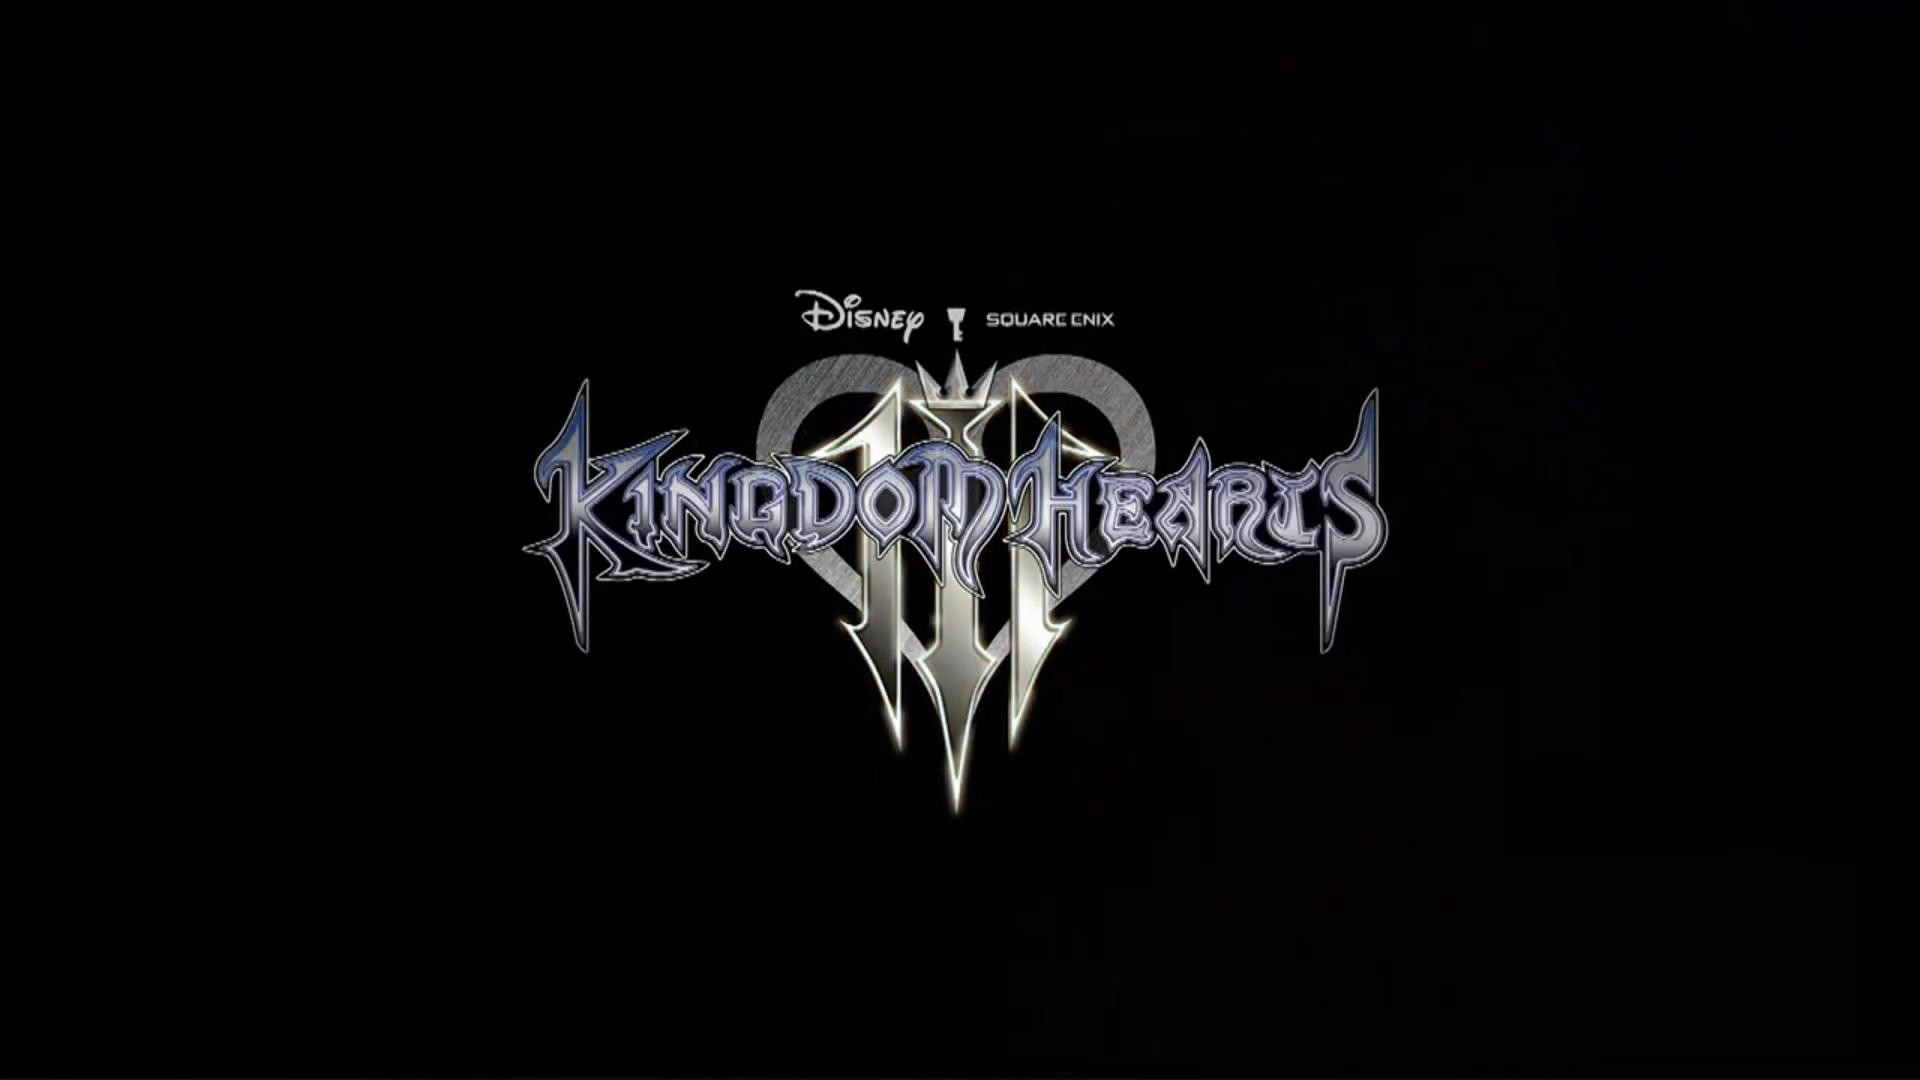 1920x1080 Wallpapers For > Kingdom Hearts 3 Iphone Wallpaper